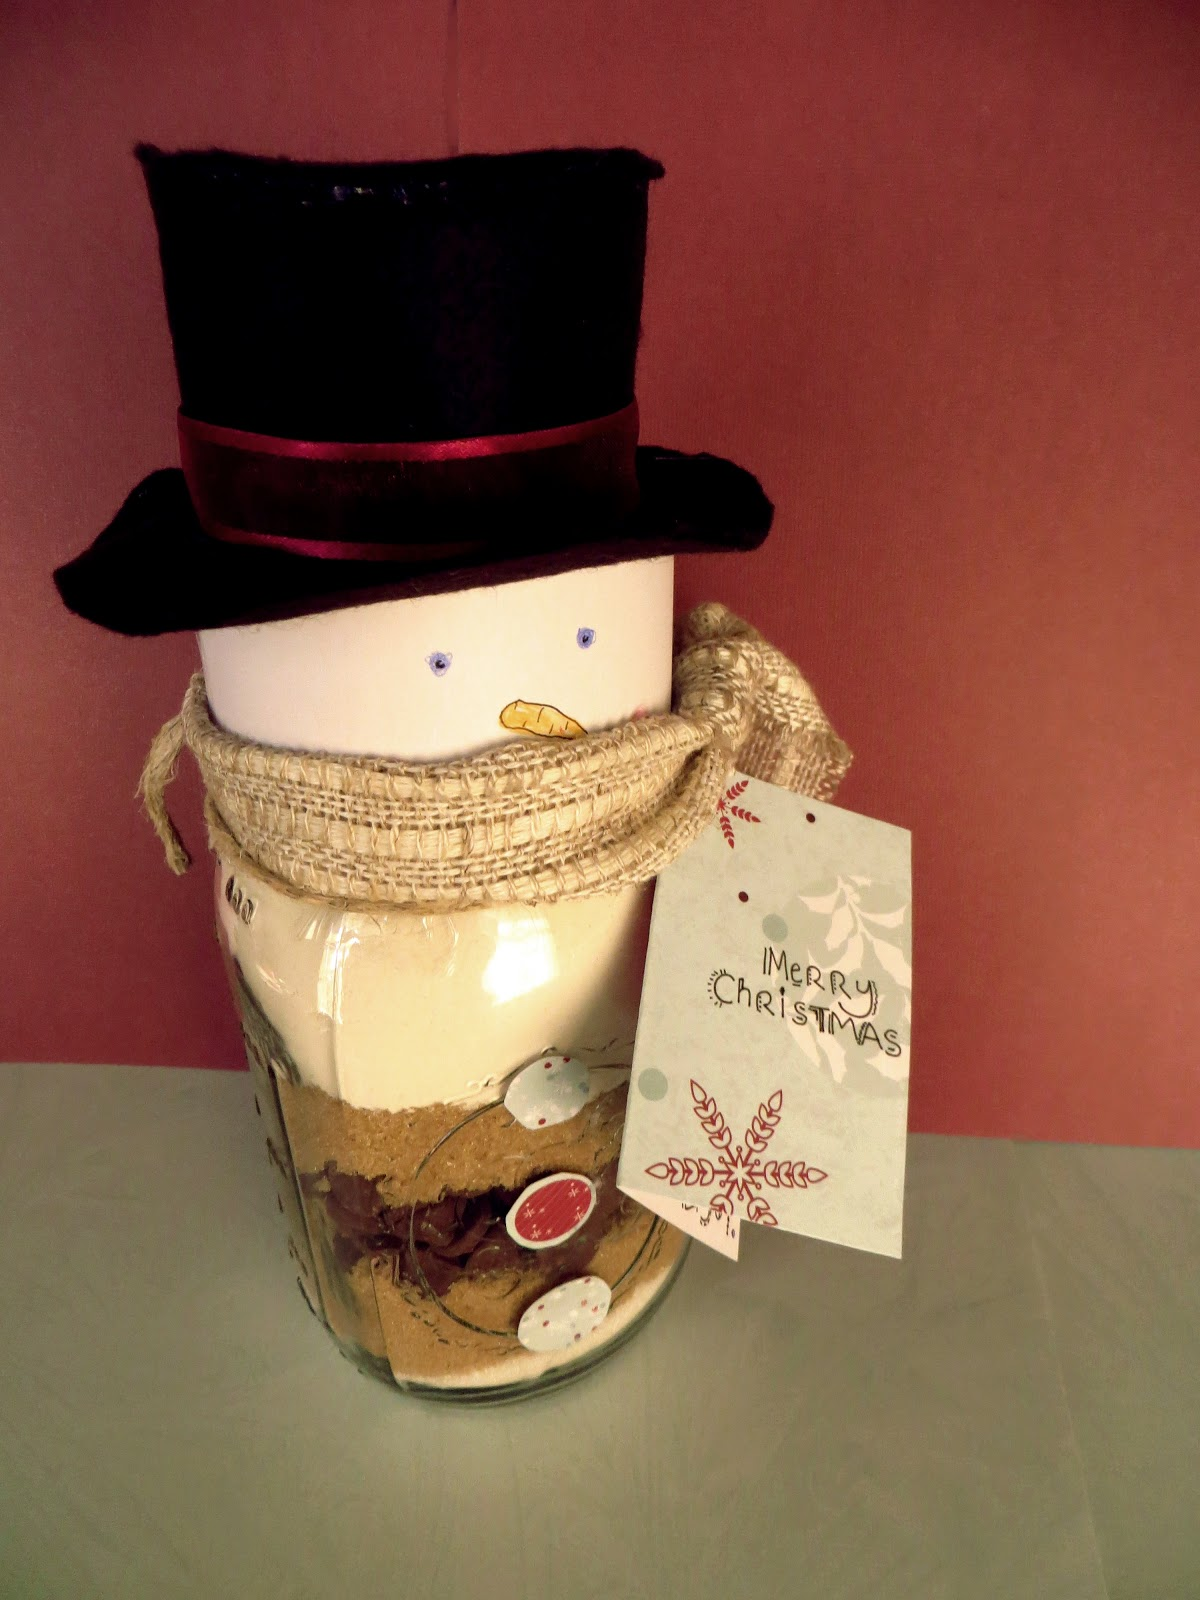 Namely Original Cookie Mix In A Snowman Jar